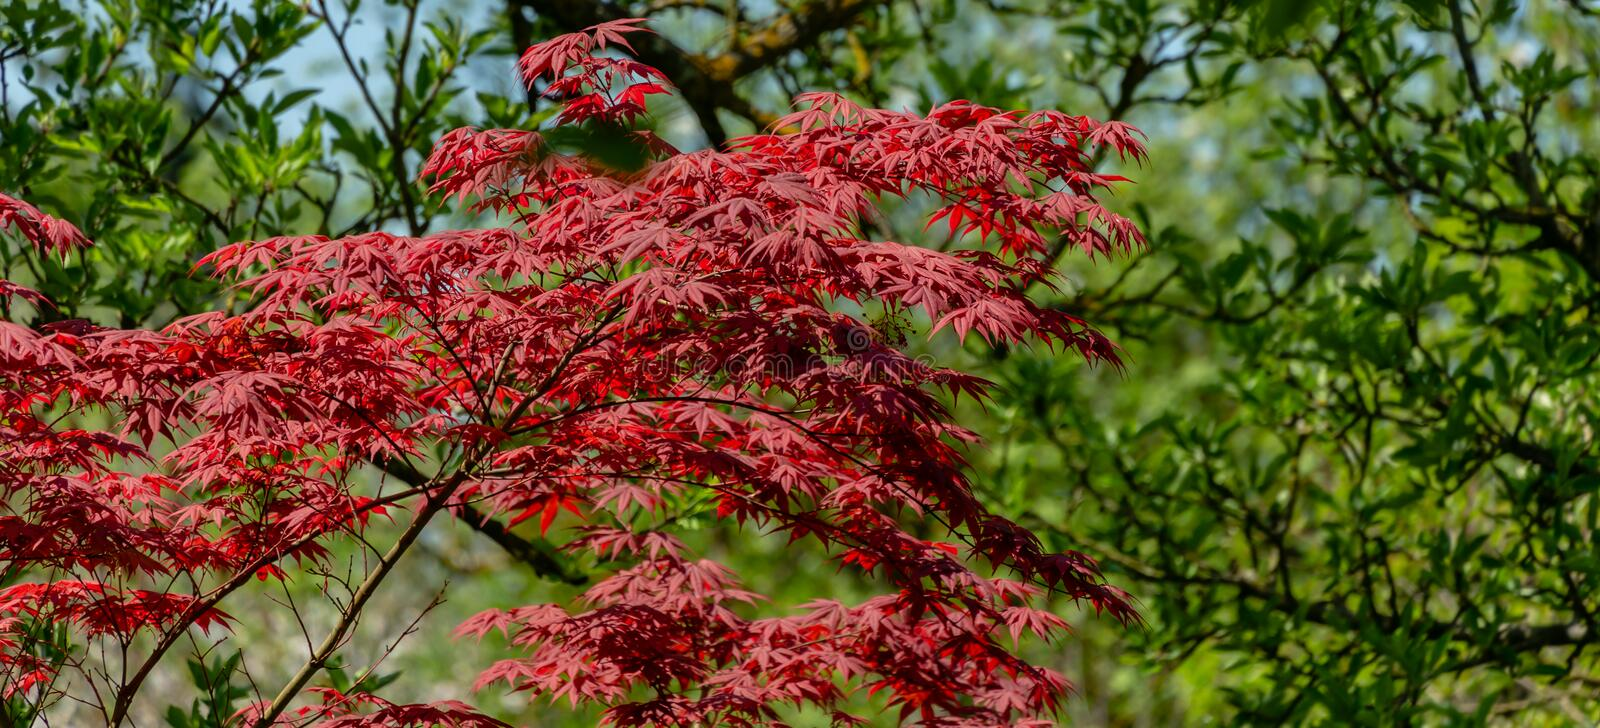 Elegant red Japanese Maple, Acer palmatum Atropurpureum tree with purple leaves. In spring garden against backdrop of greenery royalty free stock image